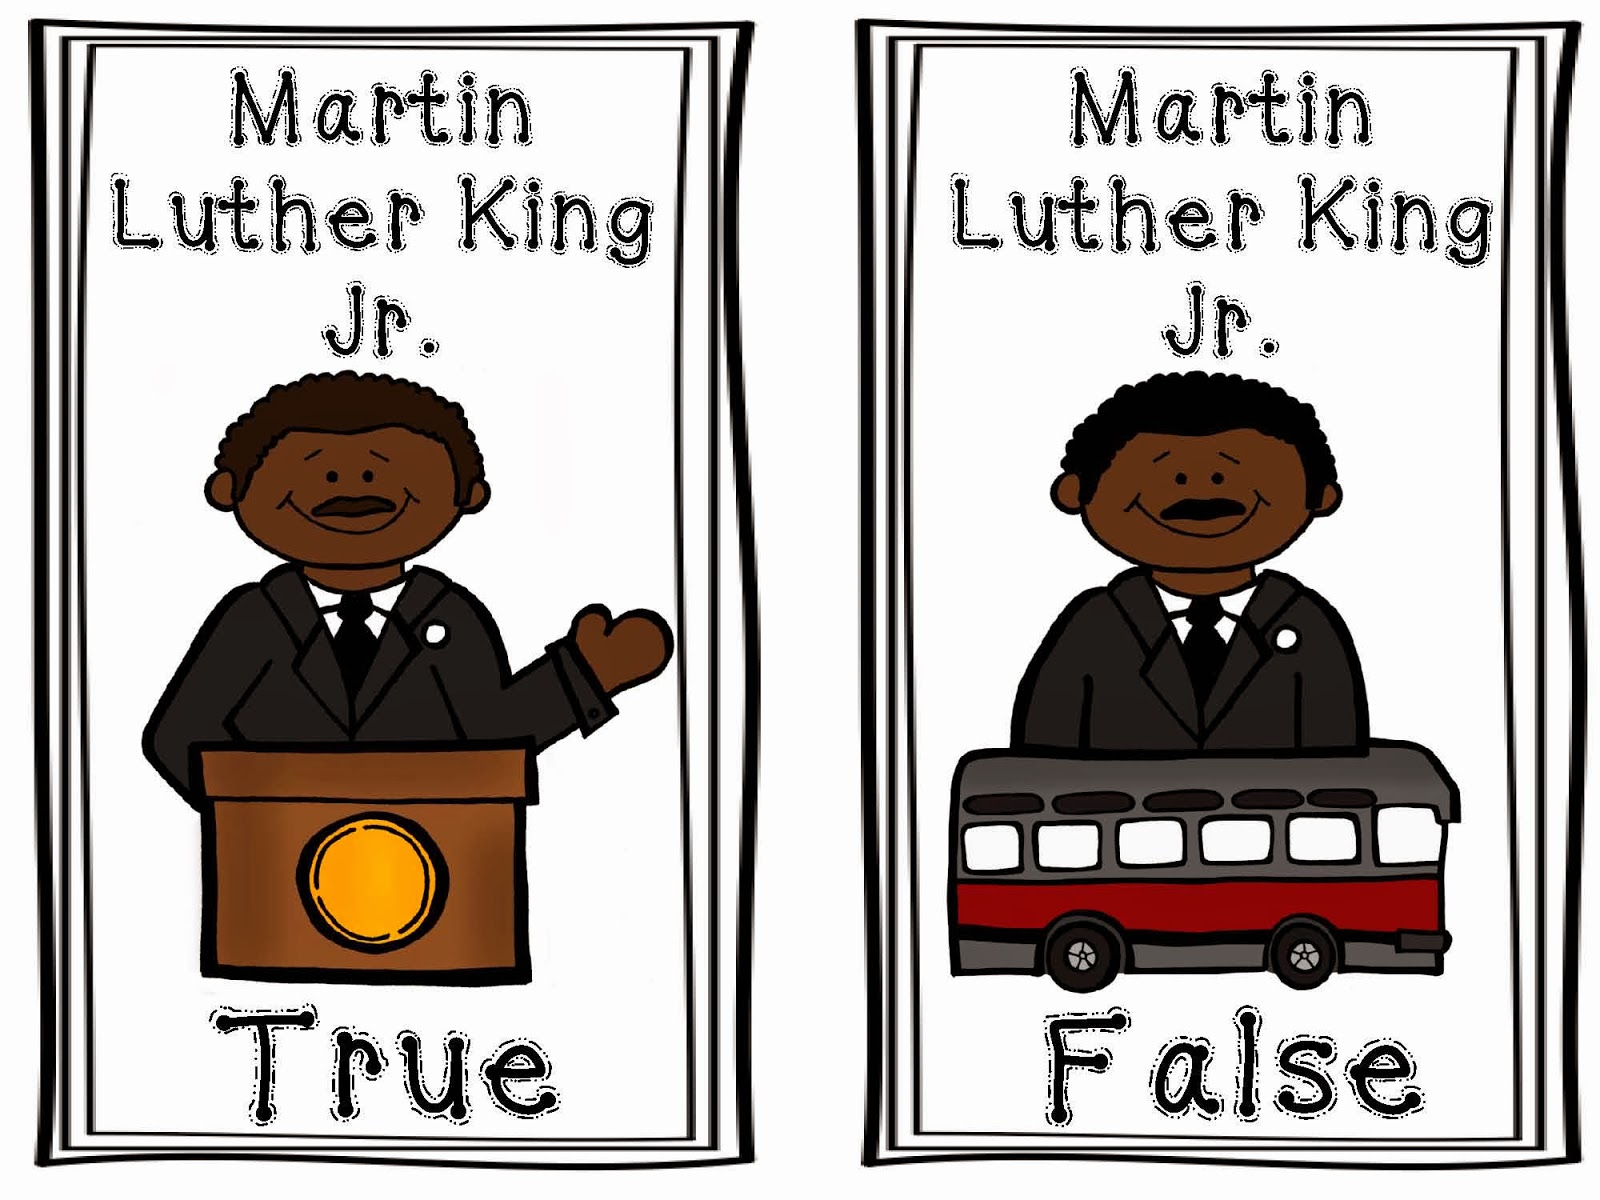 clip art martin luther king jr day - photo #46